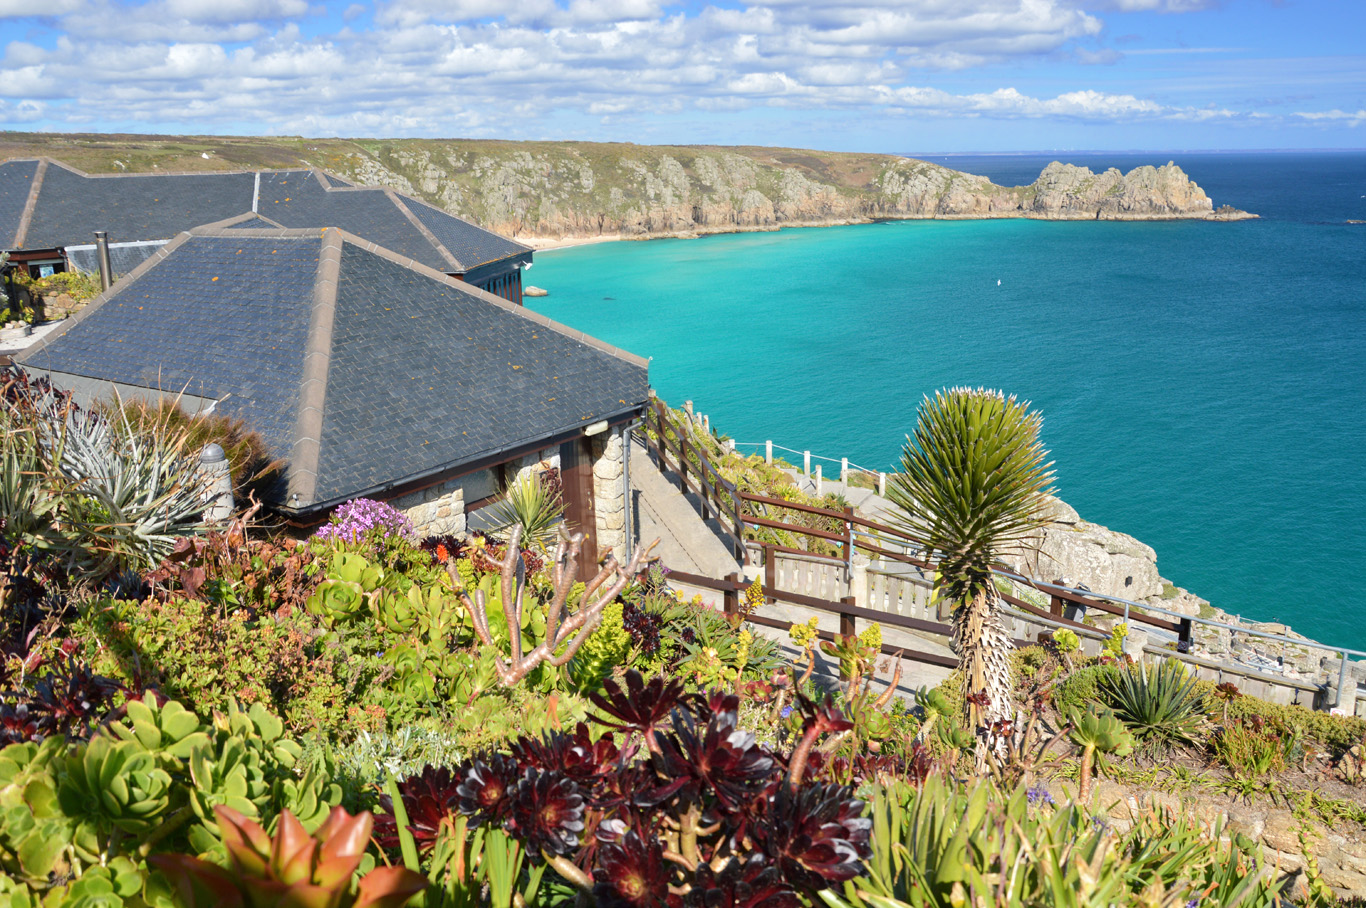 The Gardens at Minack Theater